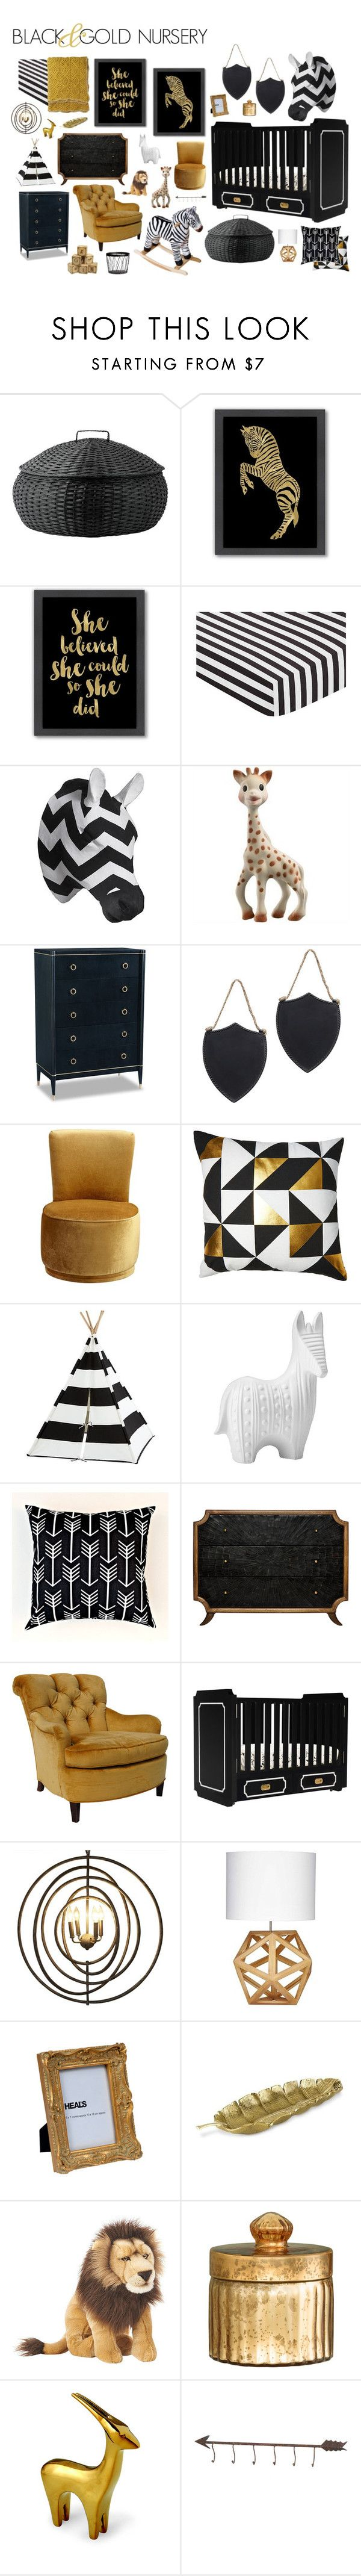 25 Best Ideas About Safari Home Decor On Pinterest African Home Decor Animal Decor And African Interior